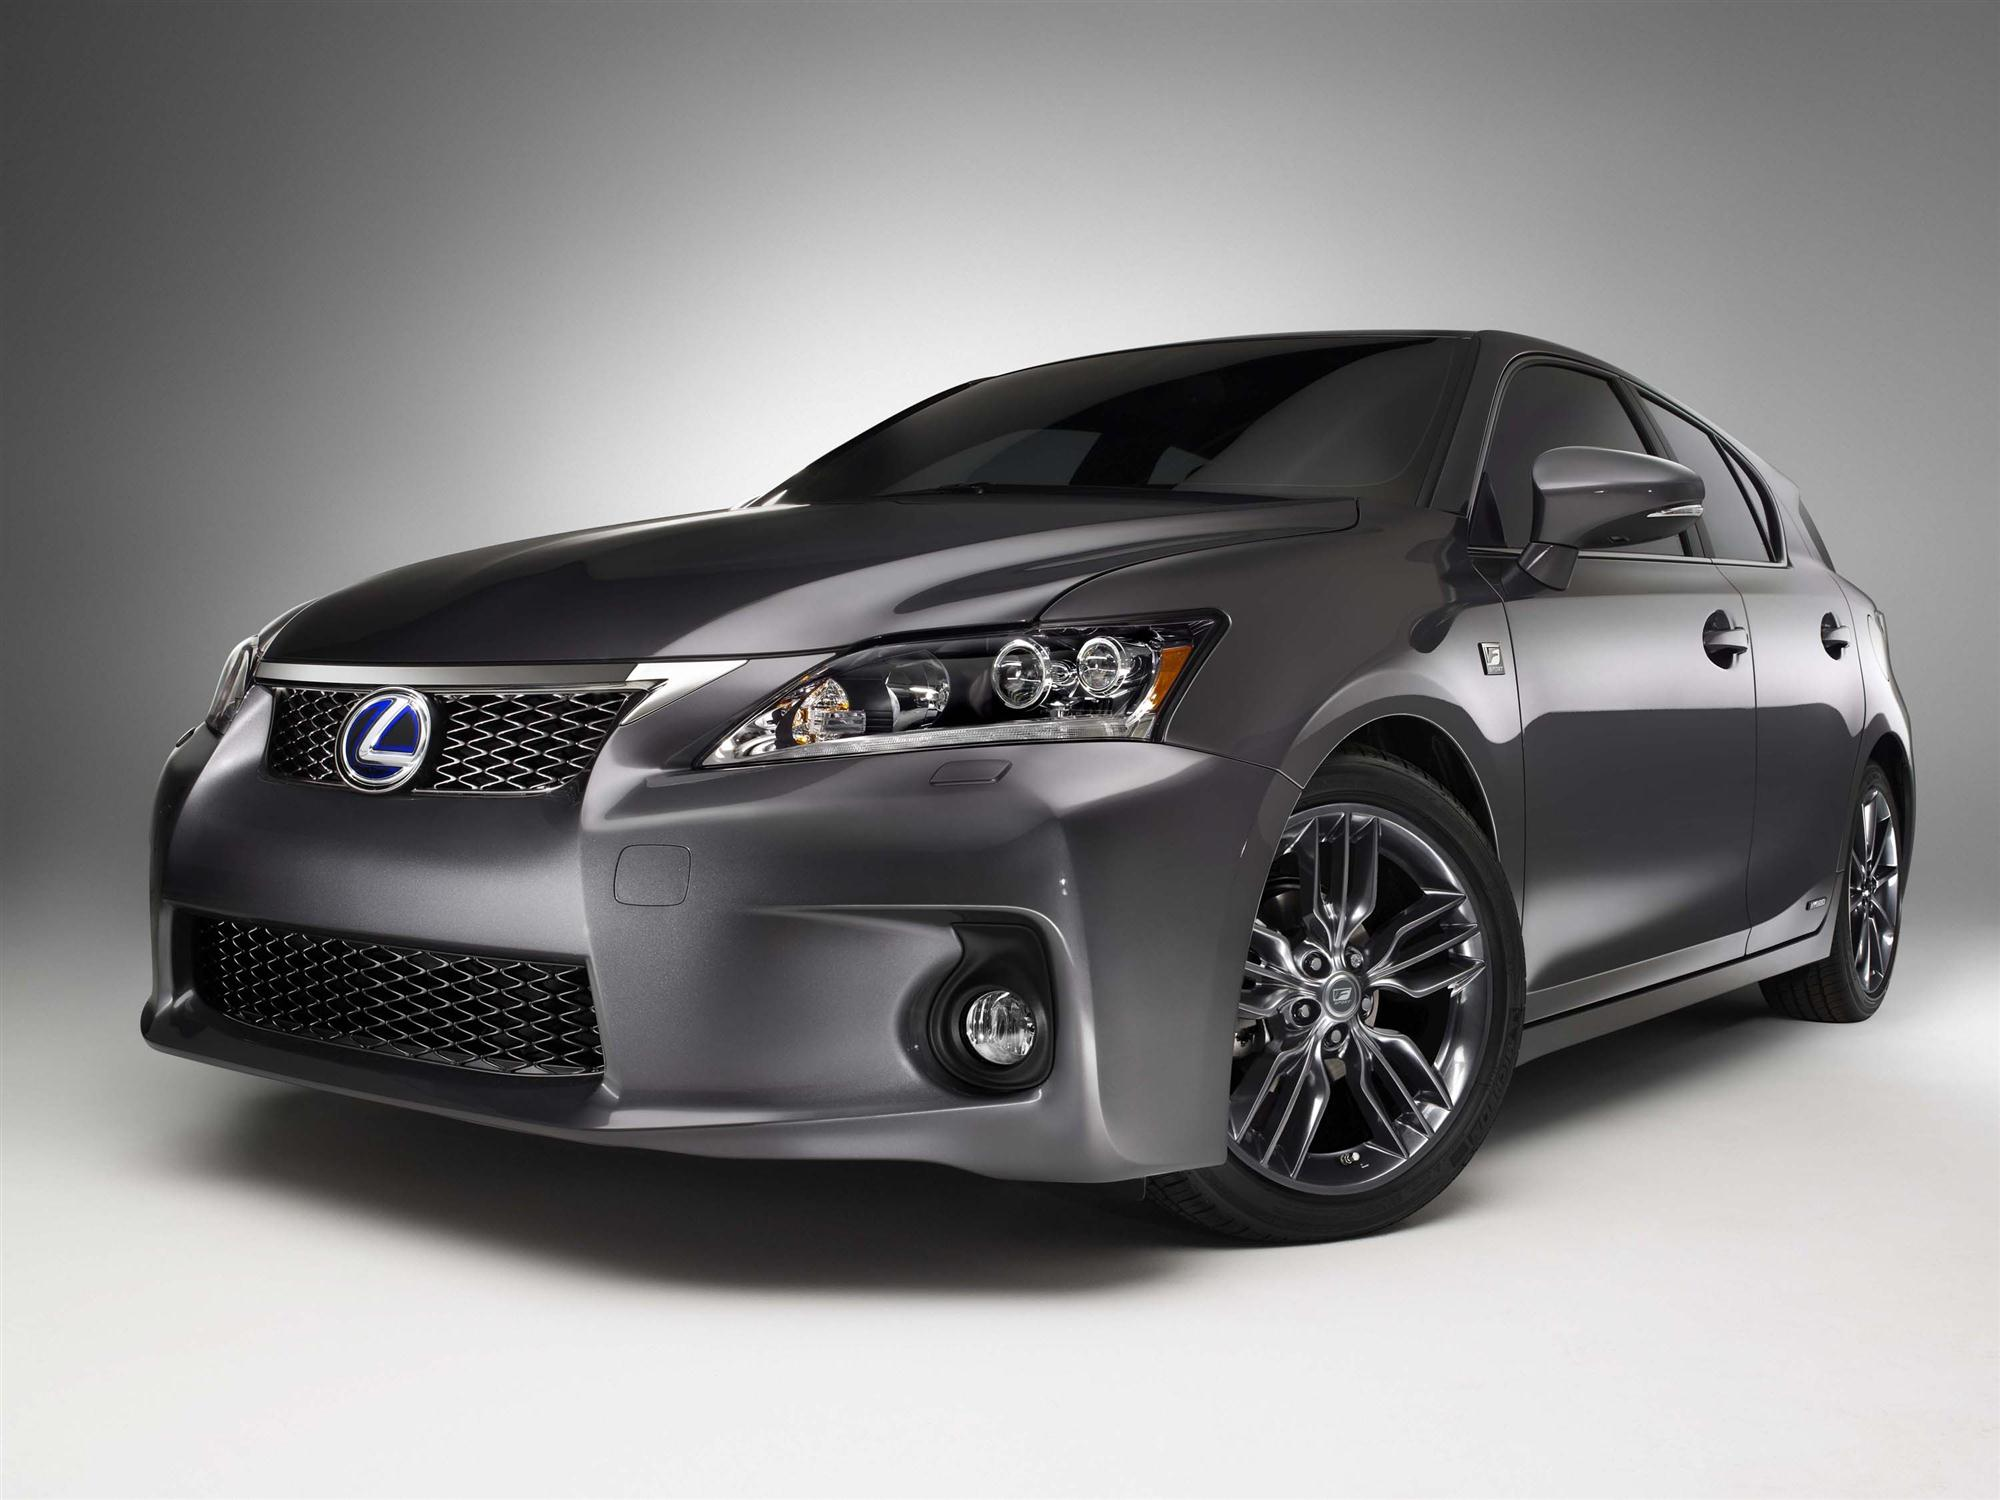 2012 Lexus CT 200h Vs 2012 Ford Focus Titanium pact paro